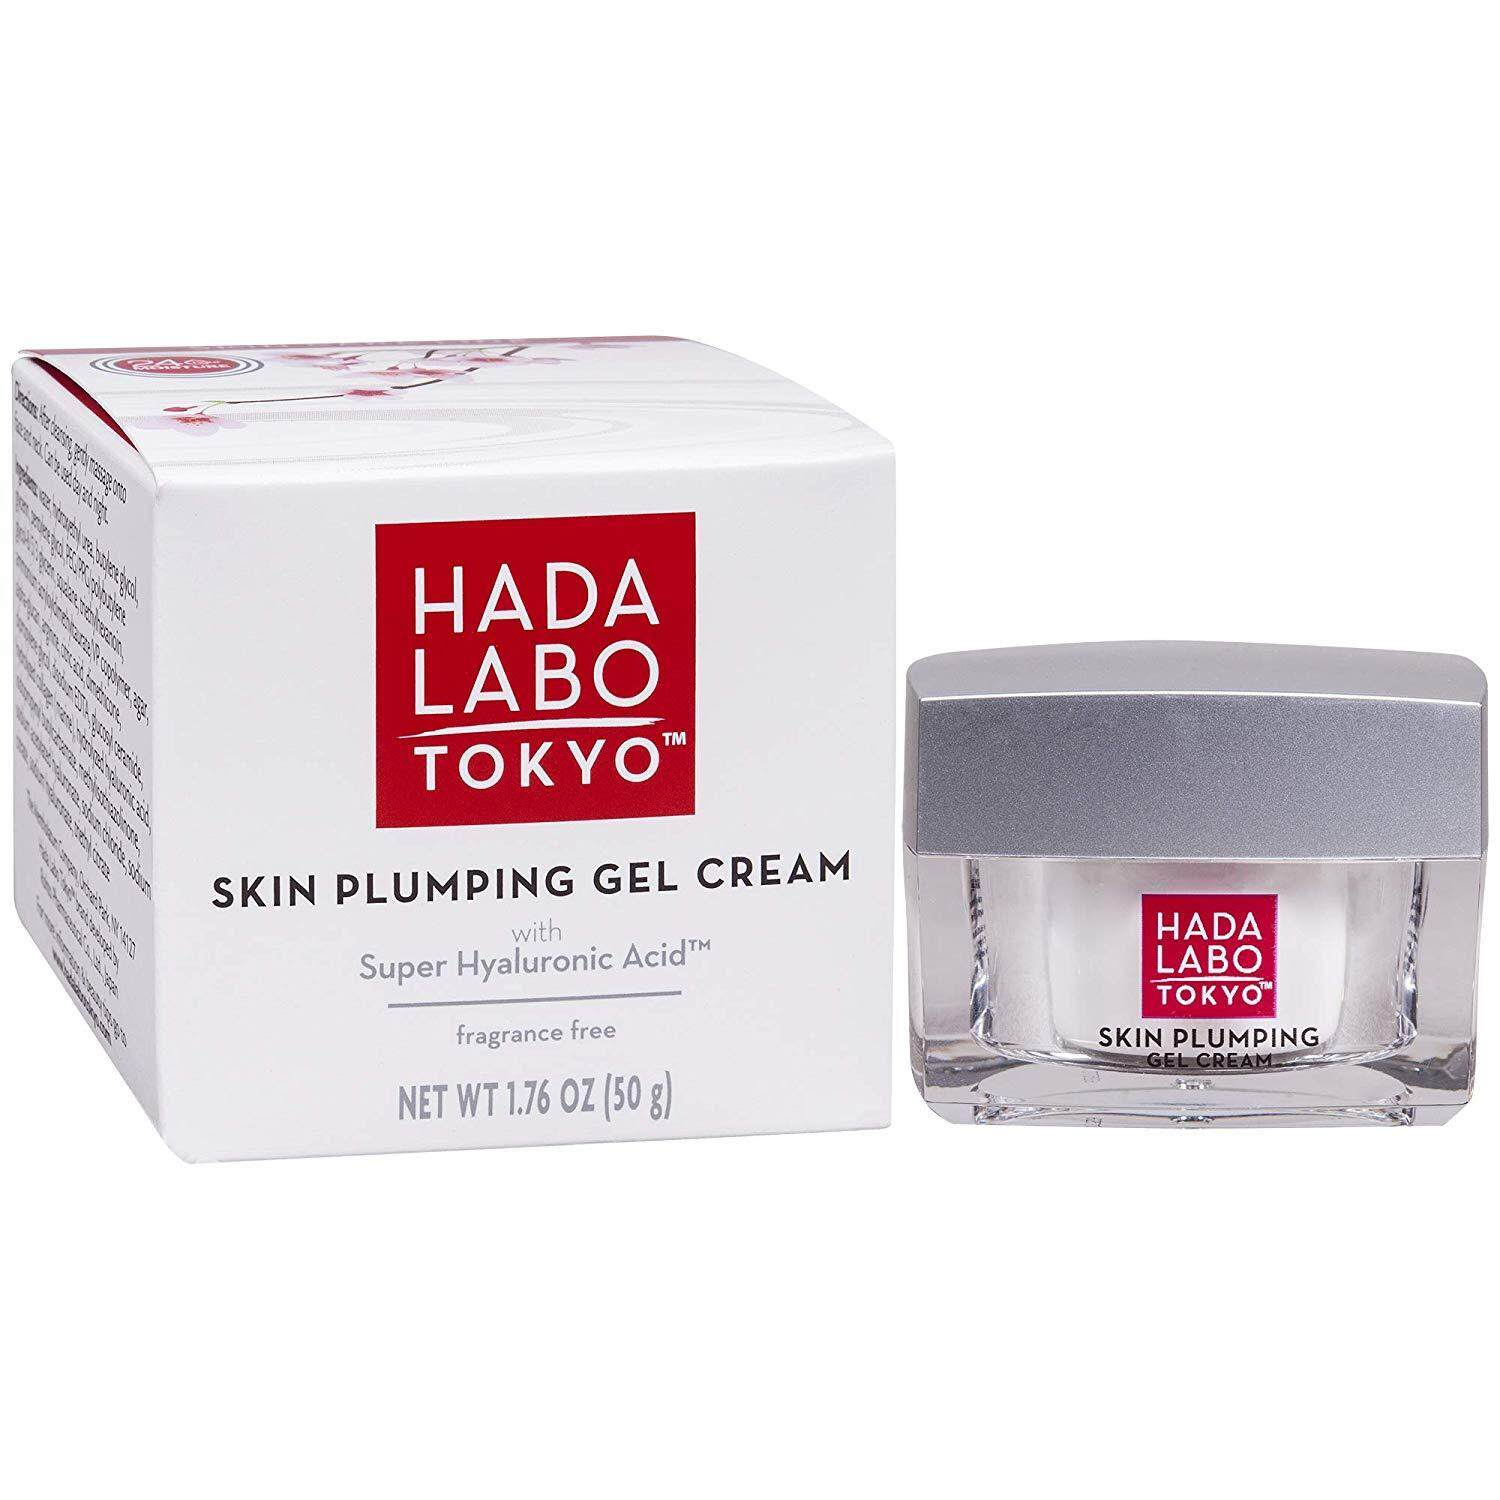 Hada Labo Tokyo Skin Plumping Gel Cream 1.76 FL OZ - with Super Hyaluronic Acid and Collagen - 24 Hour Moisture & Visible Line Plumping fragrance and paraben free non-comedogenic (Packaging May Vary)